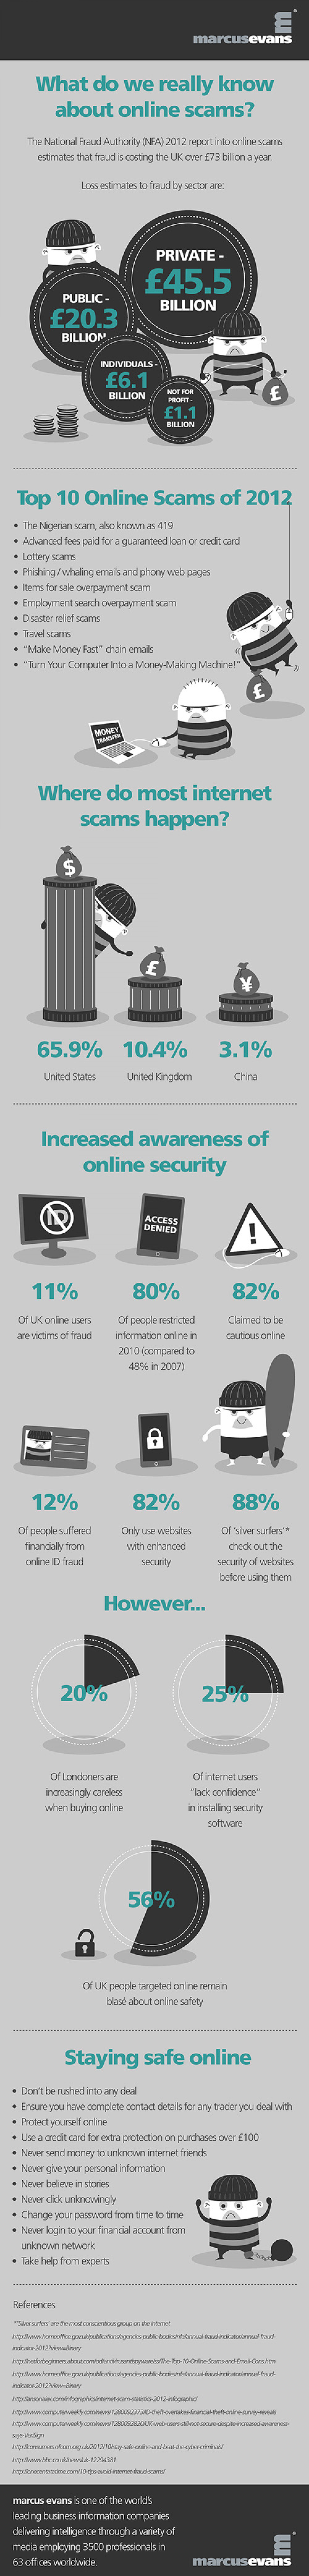 What do we really know about online scams? Infographic